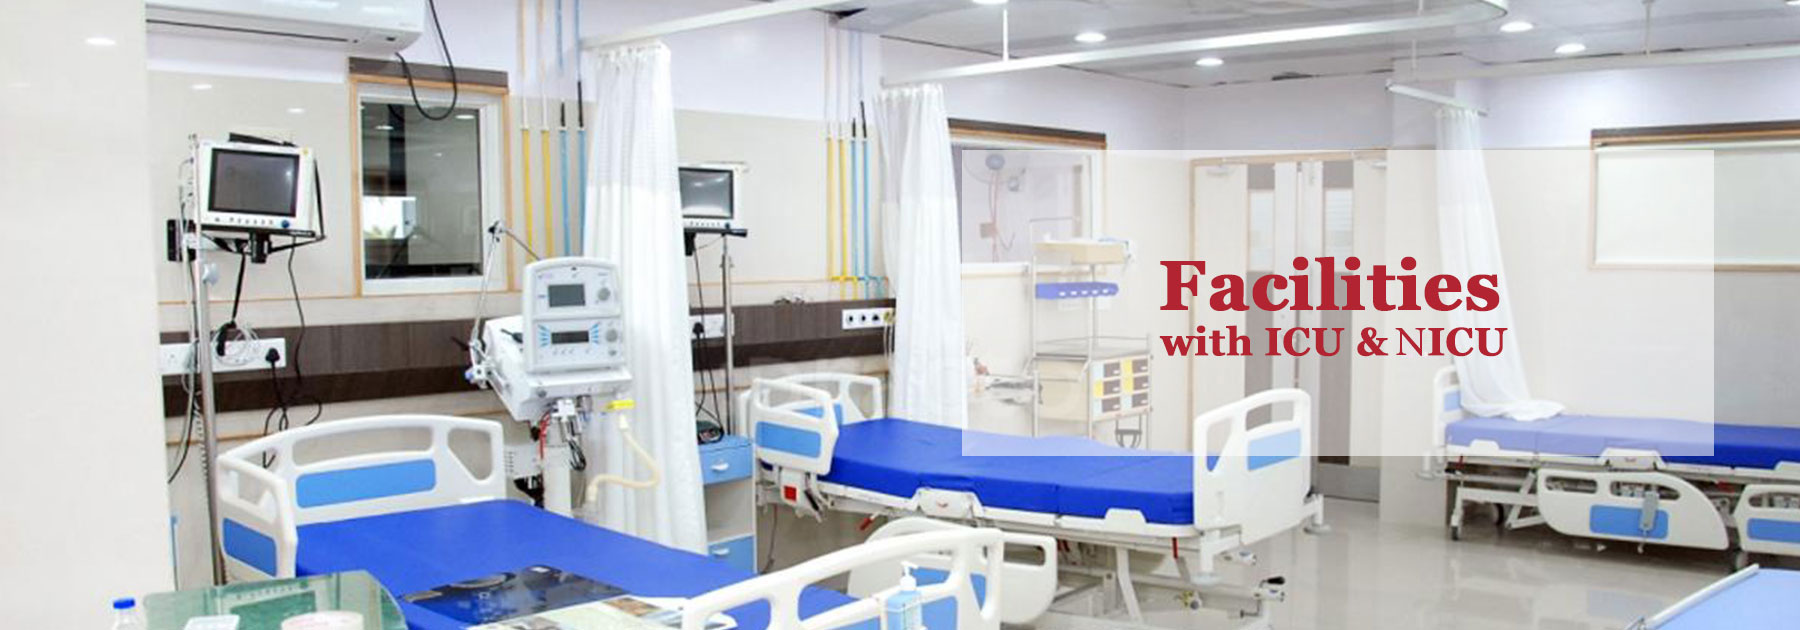 Facilities with ICU & NICU